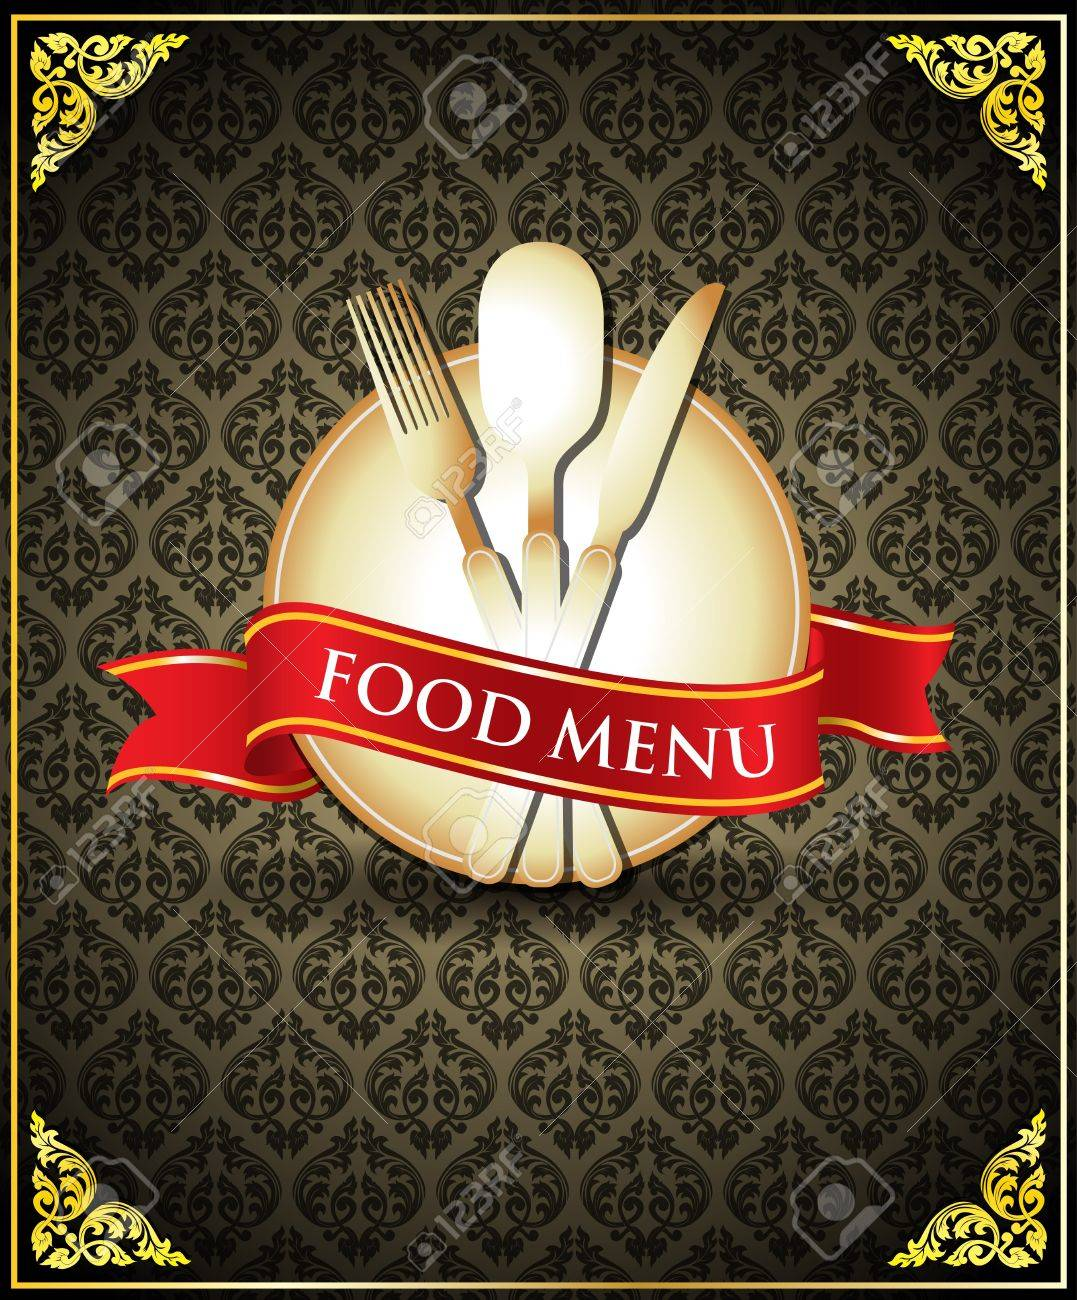 vector food menu cover royalty free cliparts, vectors, and stock